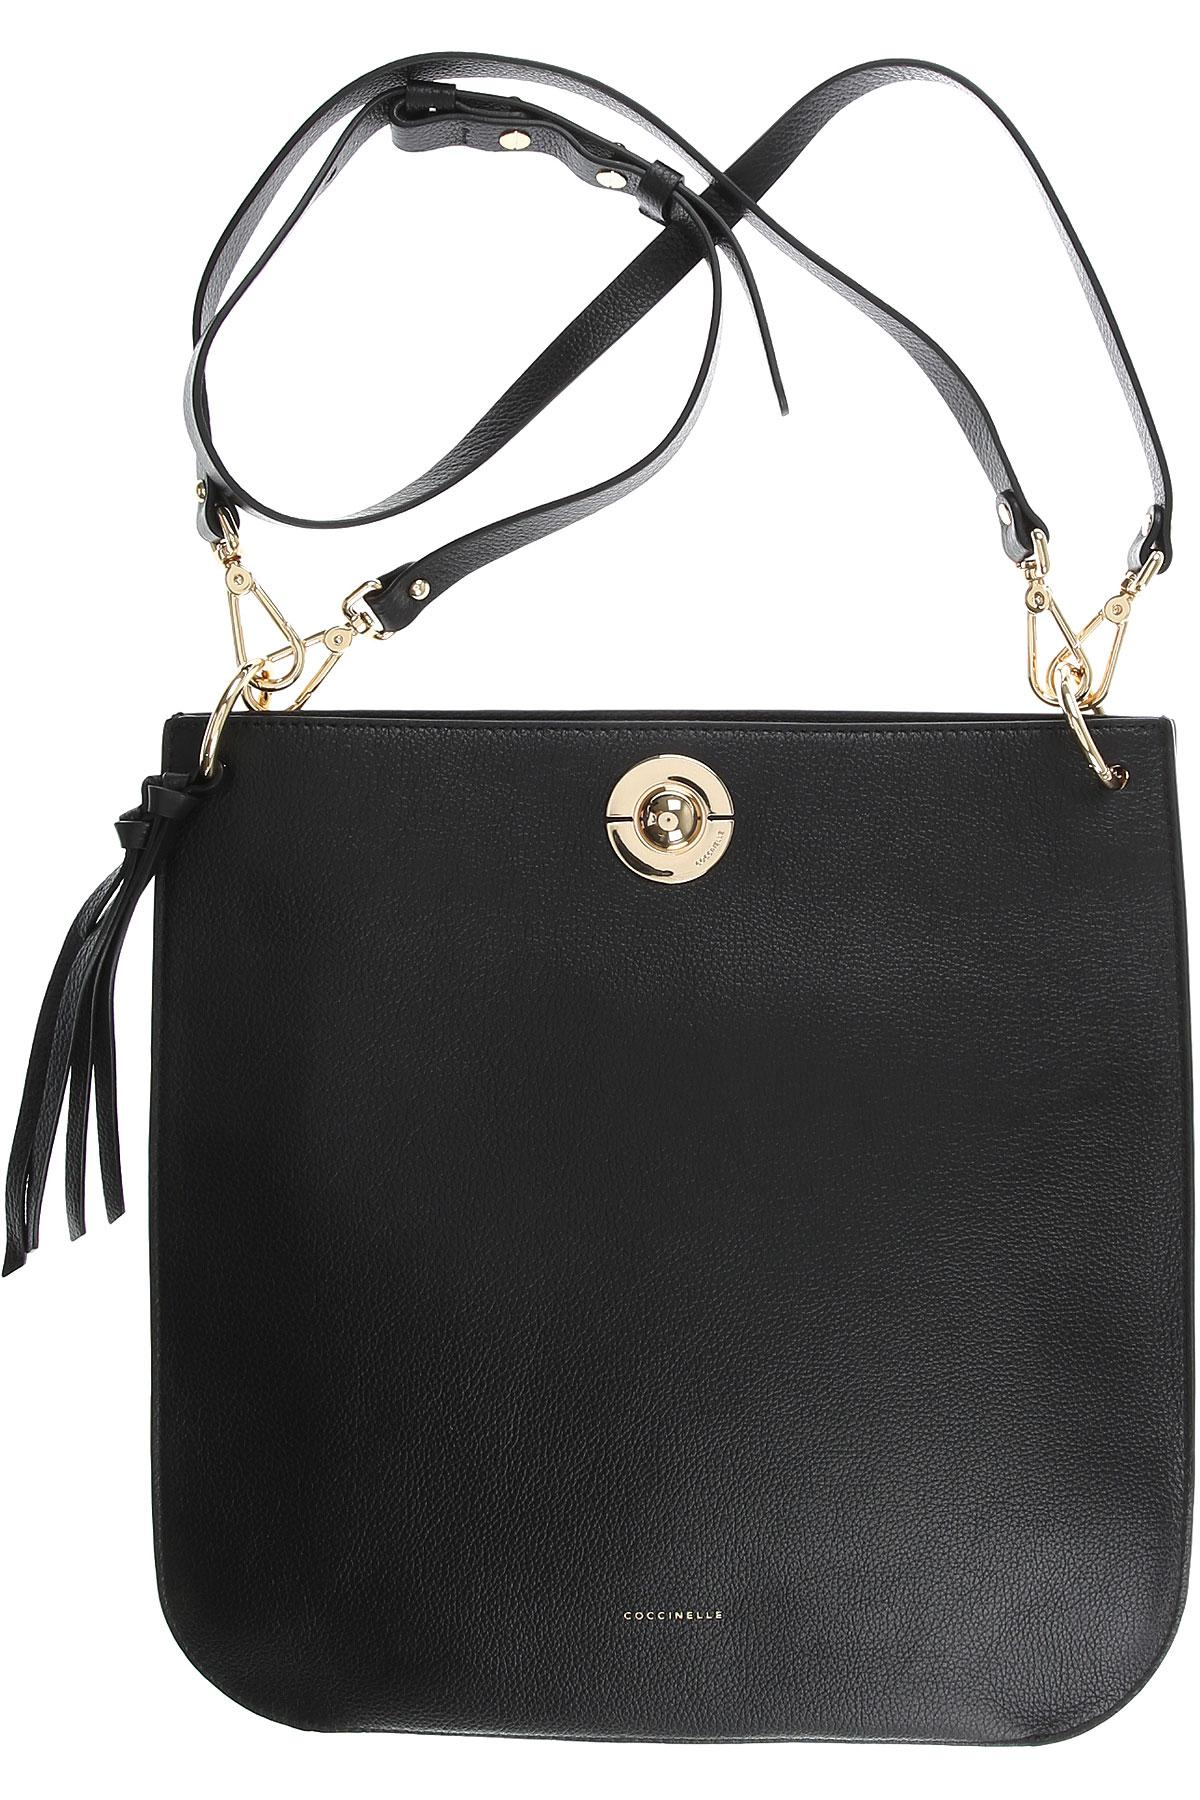 2901f1486a Coccinelle Handbags in Black - Lyst